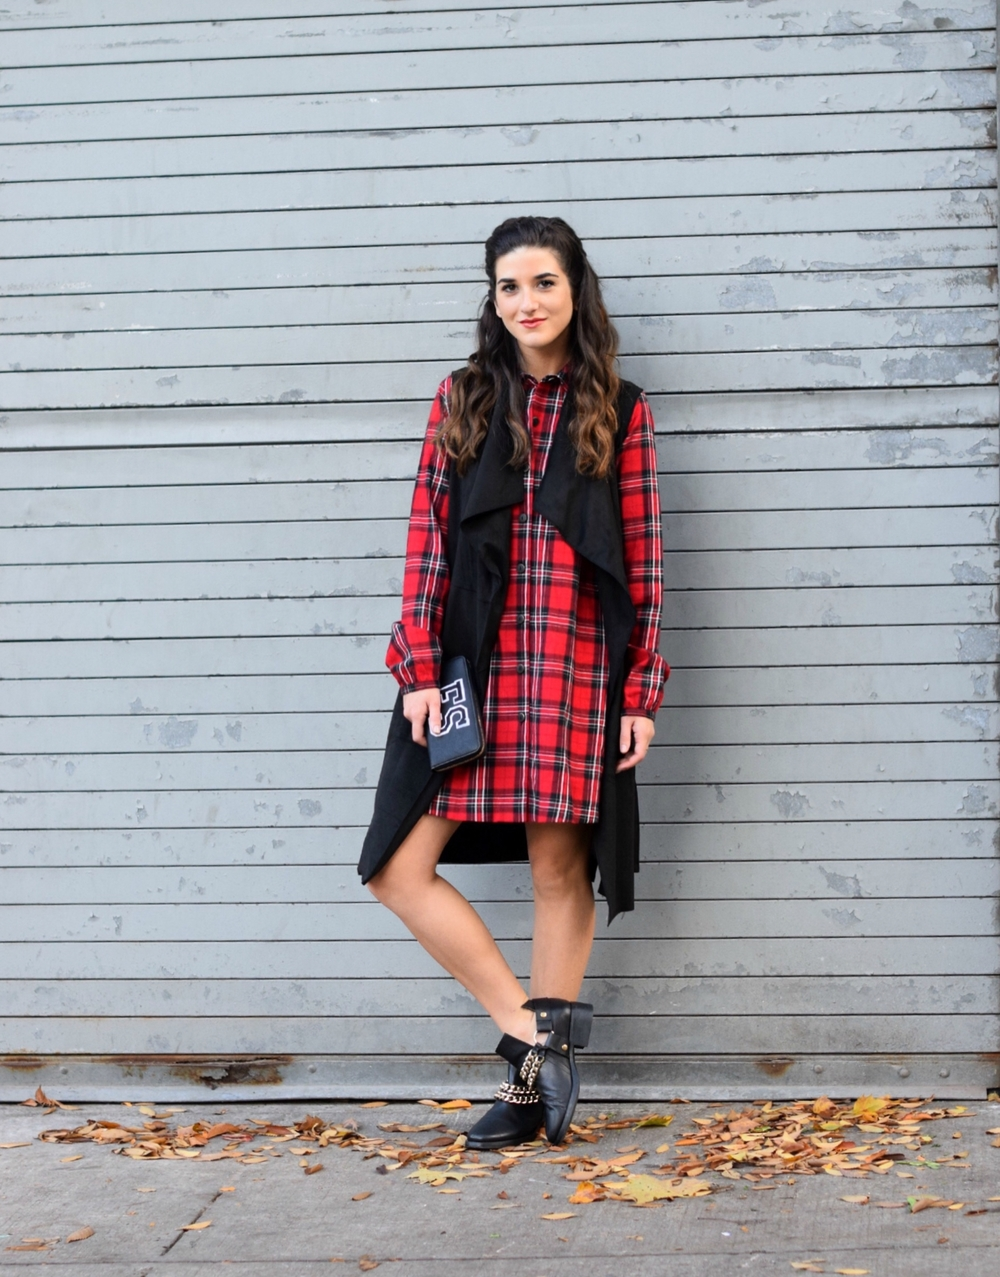 Plaid Dress Long Black Vest Louboutins & Love Fashion Blog NYC Street Style Blogger Fall Weather Season Outfit OOTD Chain Booties Zara Monogram Wallet Hair Braid Inspo Pretty Shirt Shopping Girl Women Shoes Leaves Photoshoot Model Wearing Fashionista.jpg